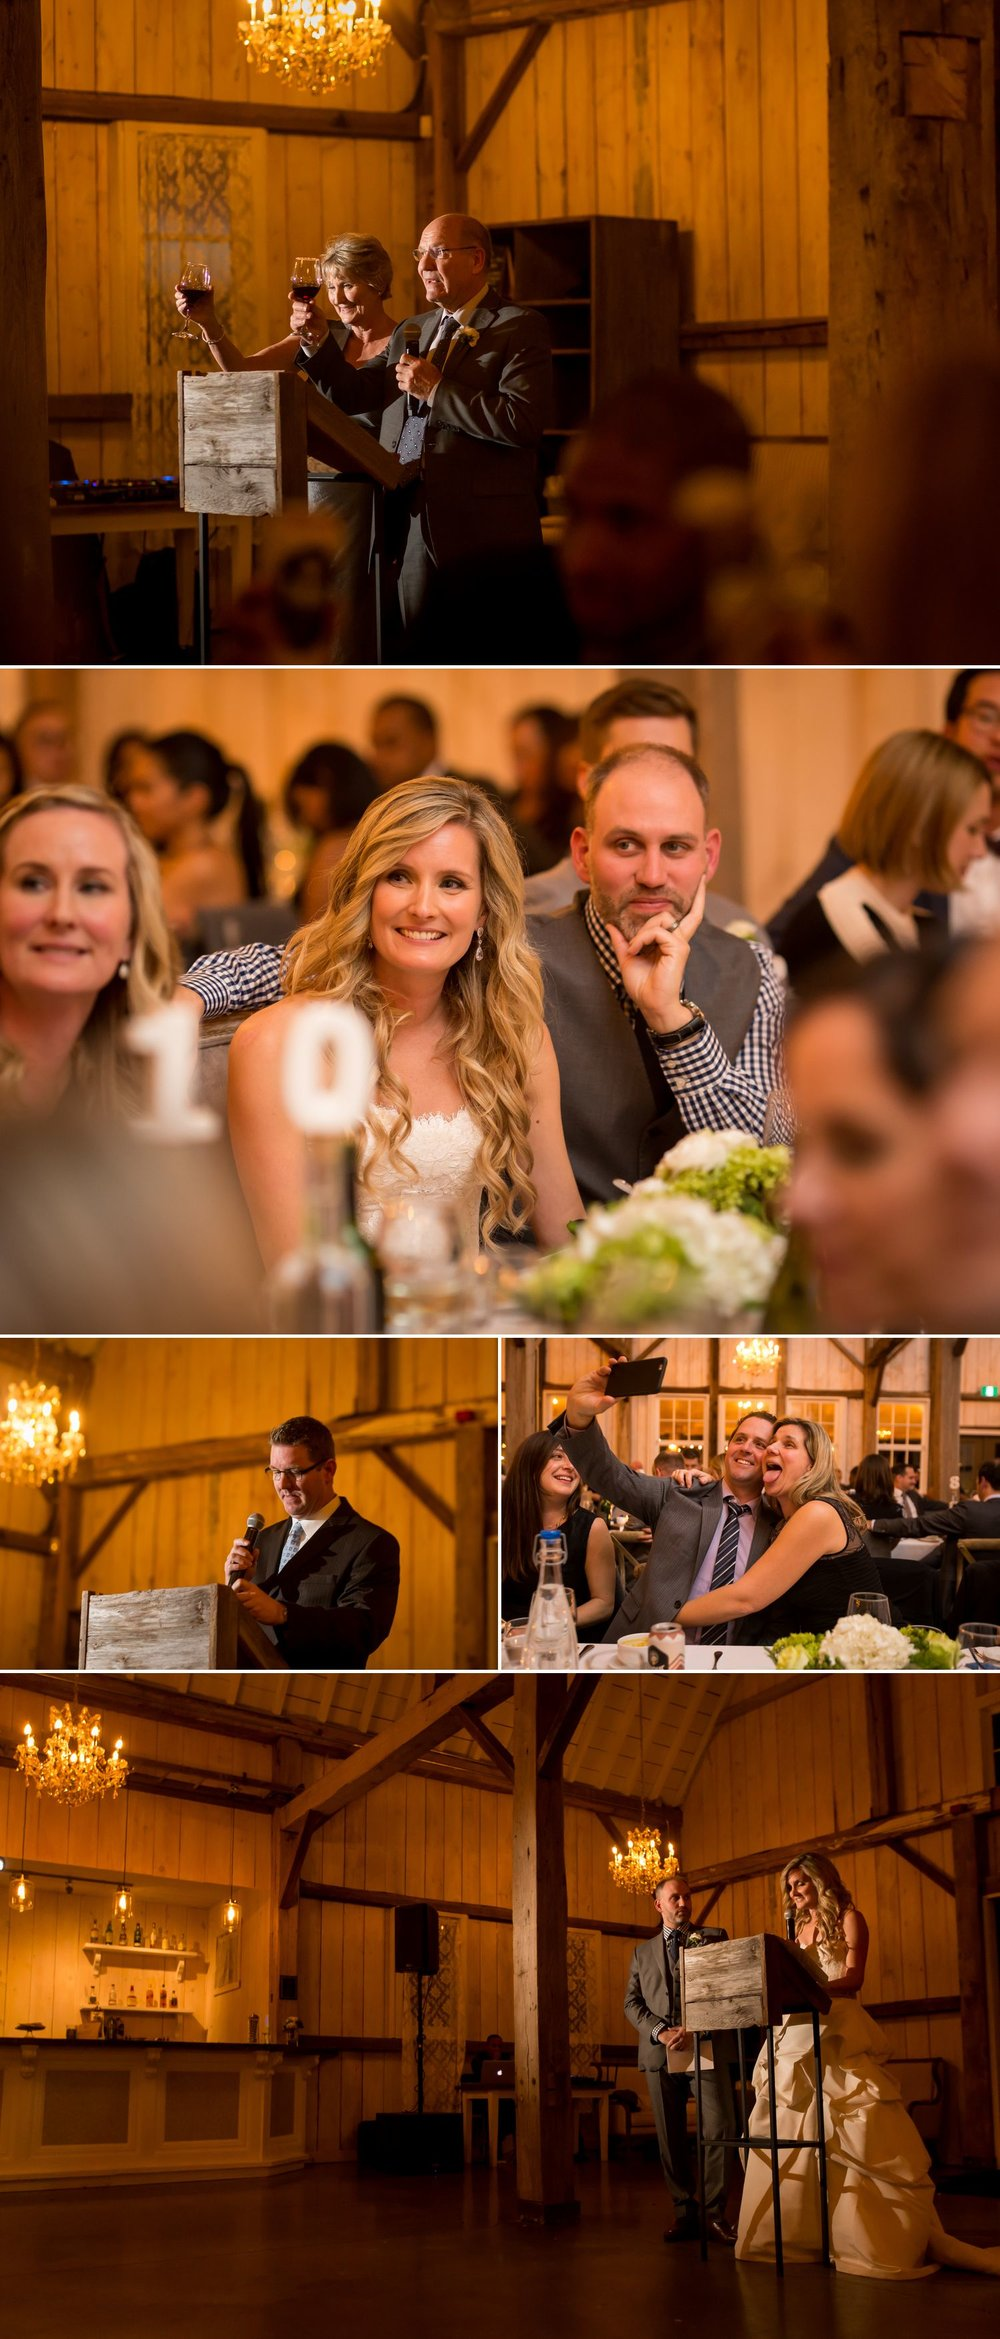 A wedding reception inside the barn at Stonefields Heritage Farm